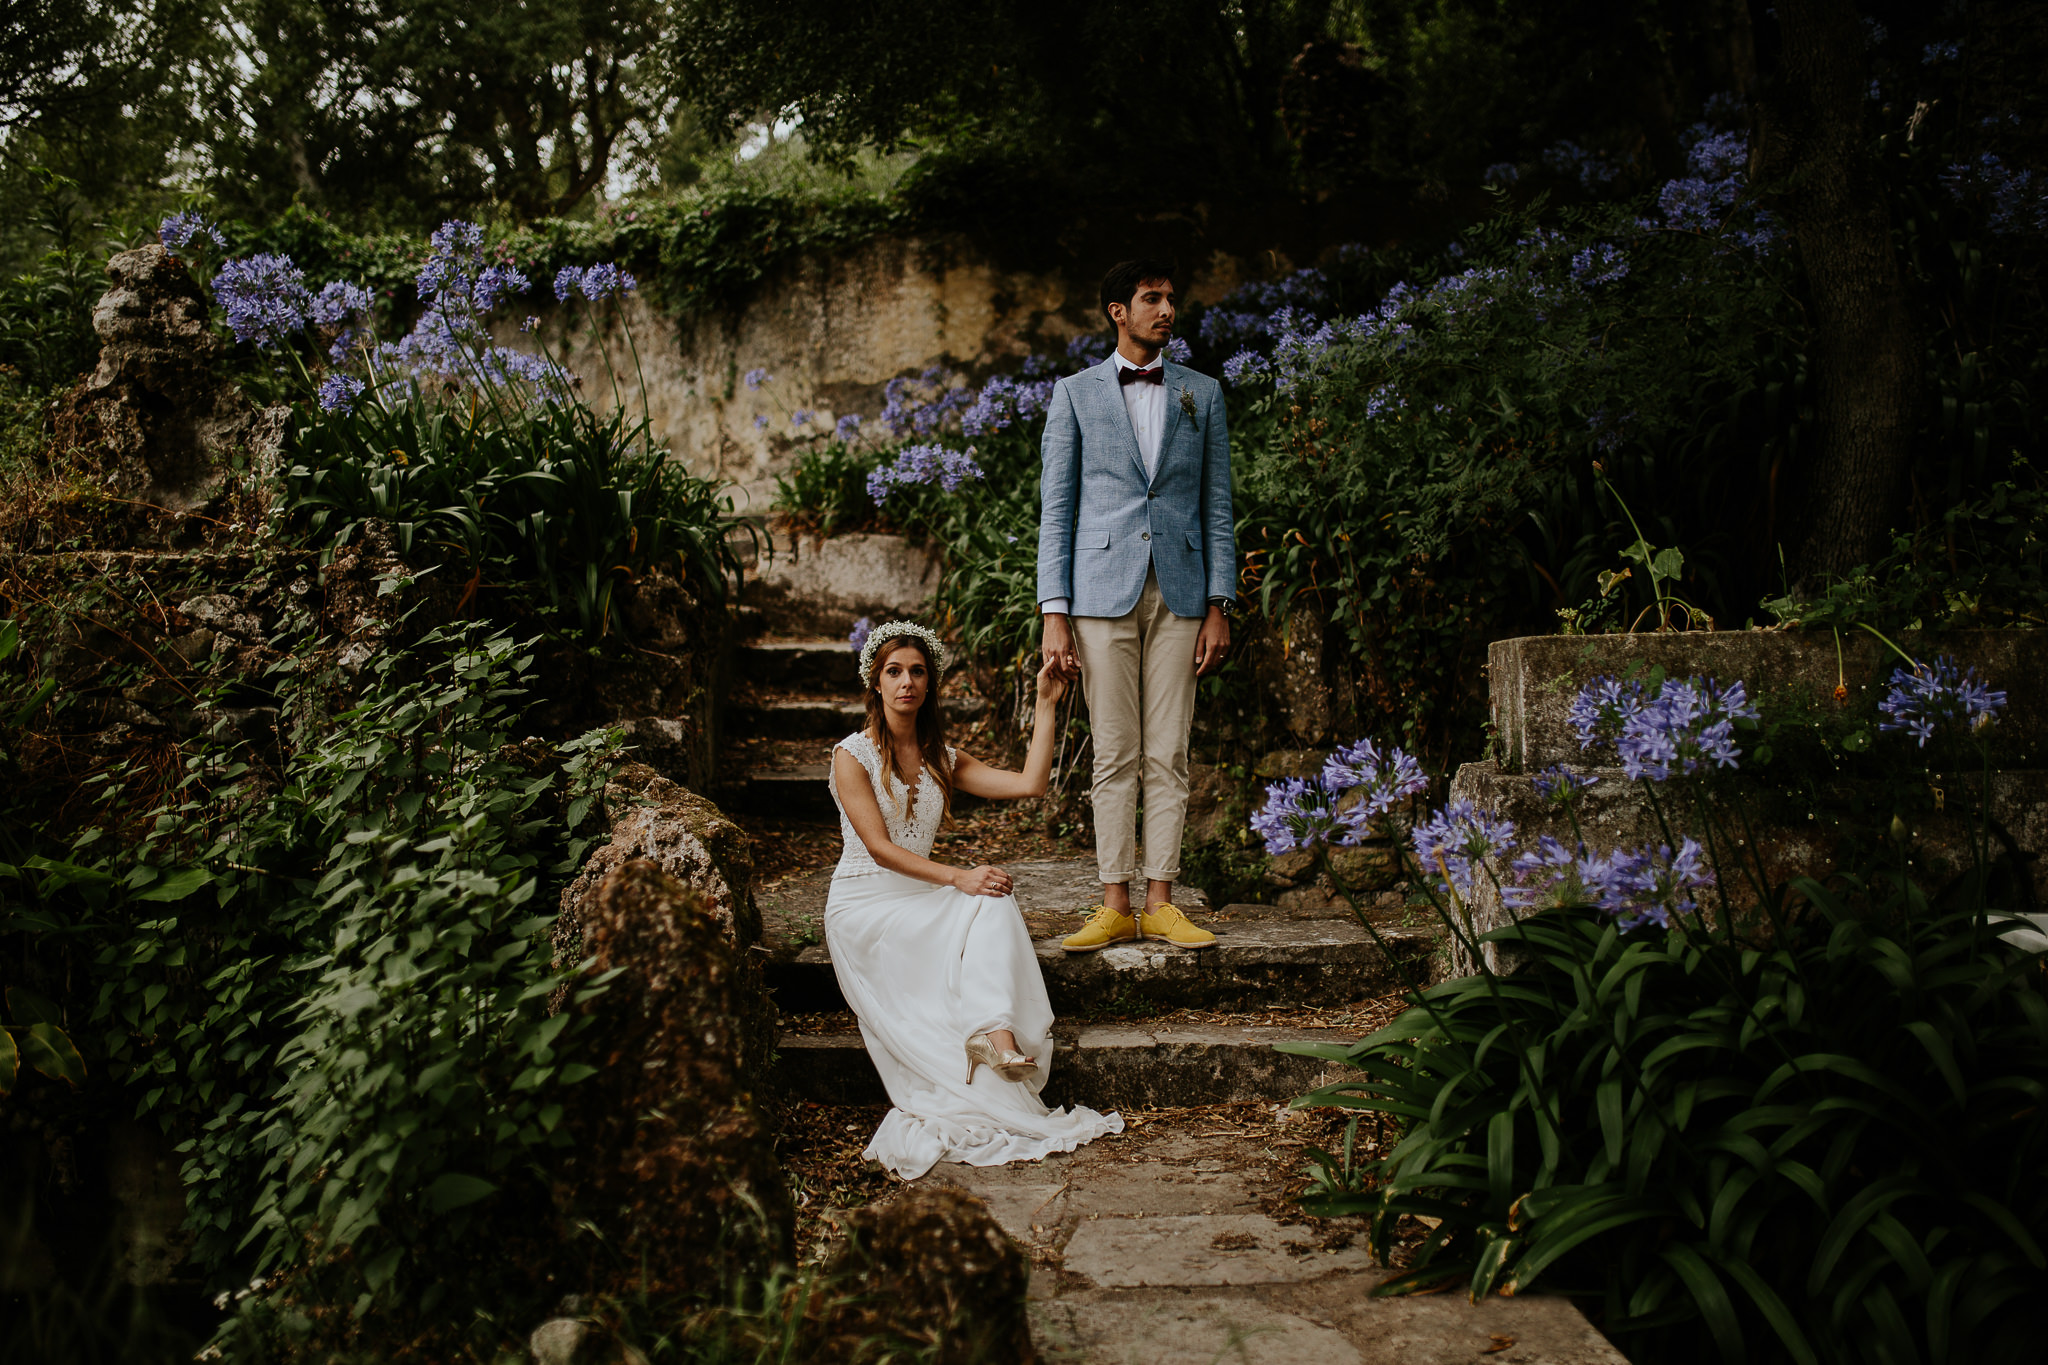 romina_thomas_destination_wedding_photography_fotografia_de_casamento_lisbon_sintra_penha_longa_resort-13